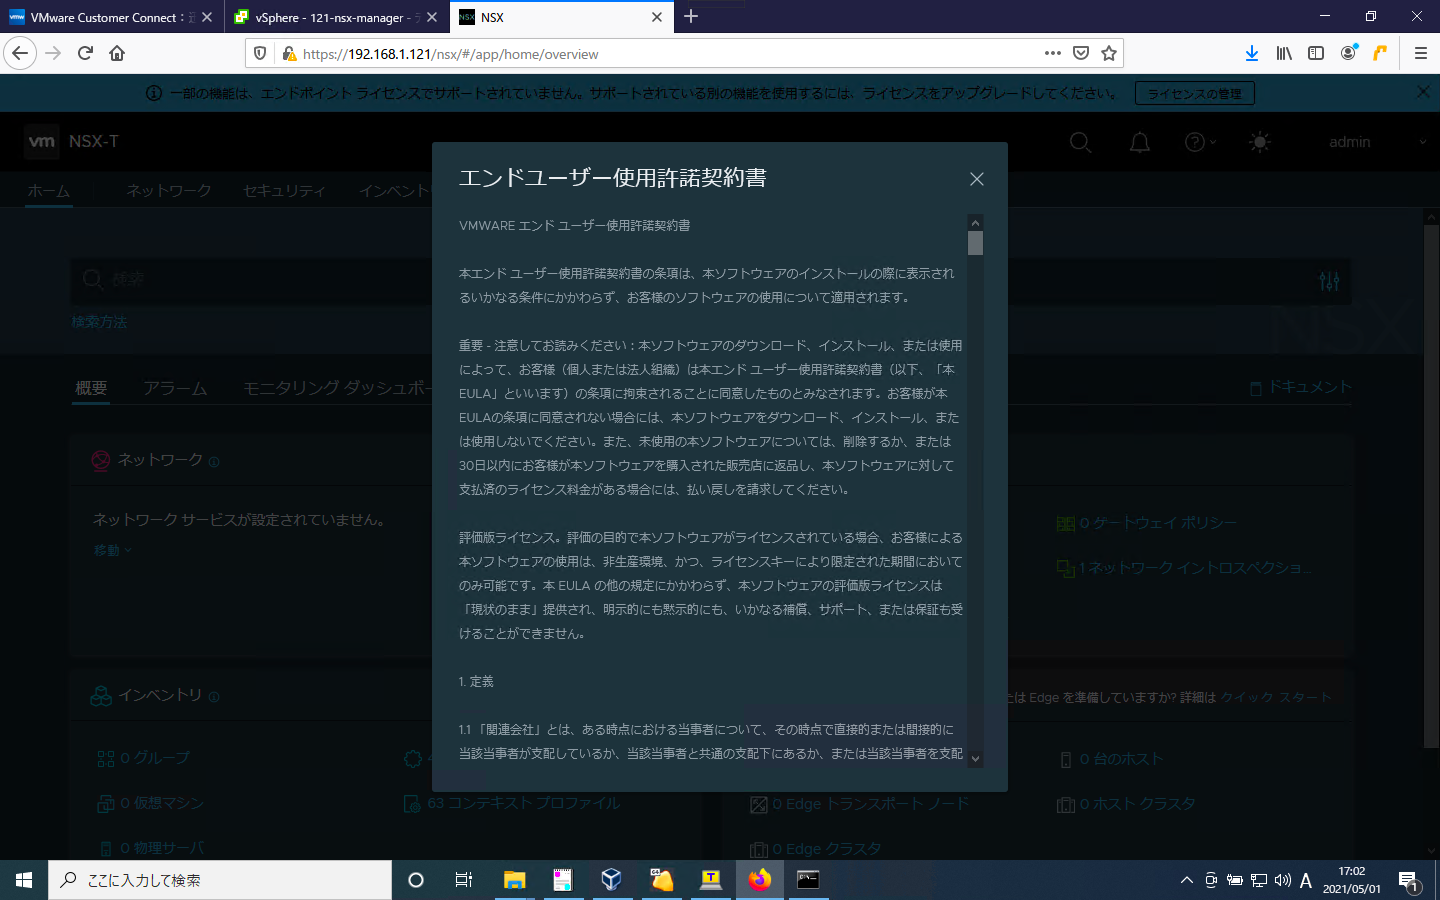 NSX Managerの起動 05